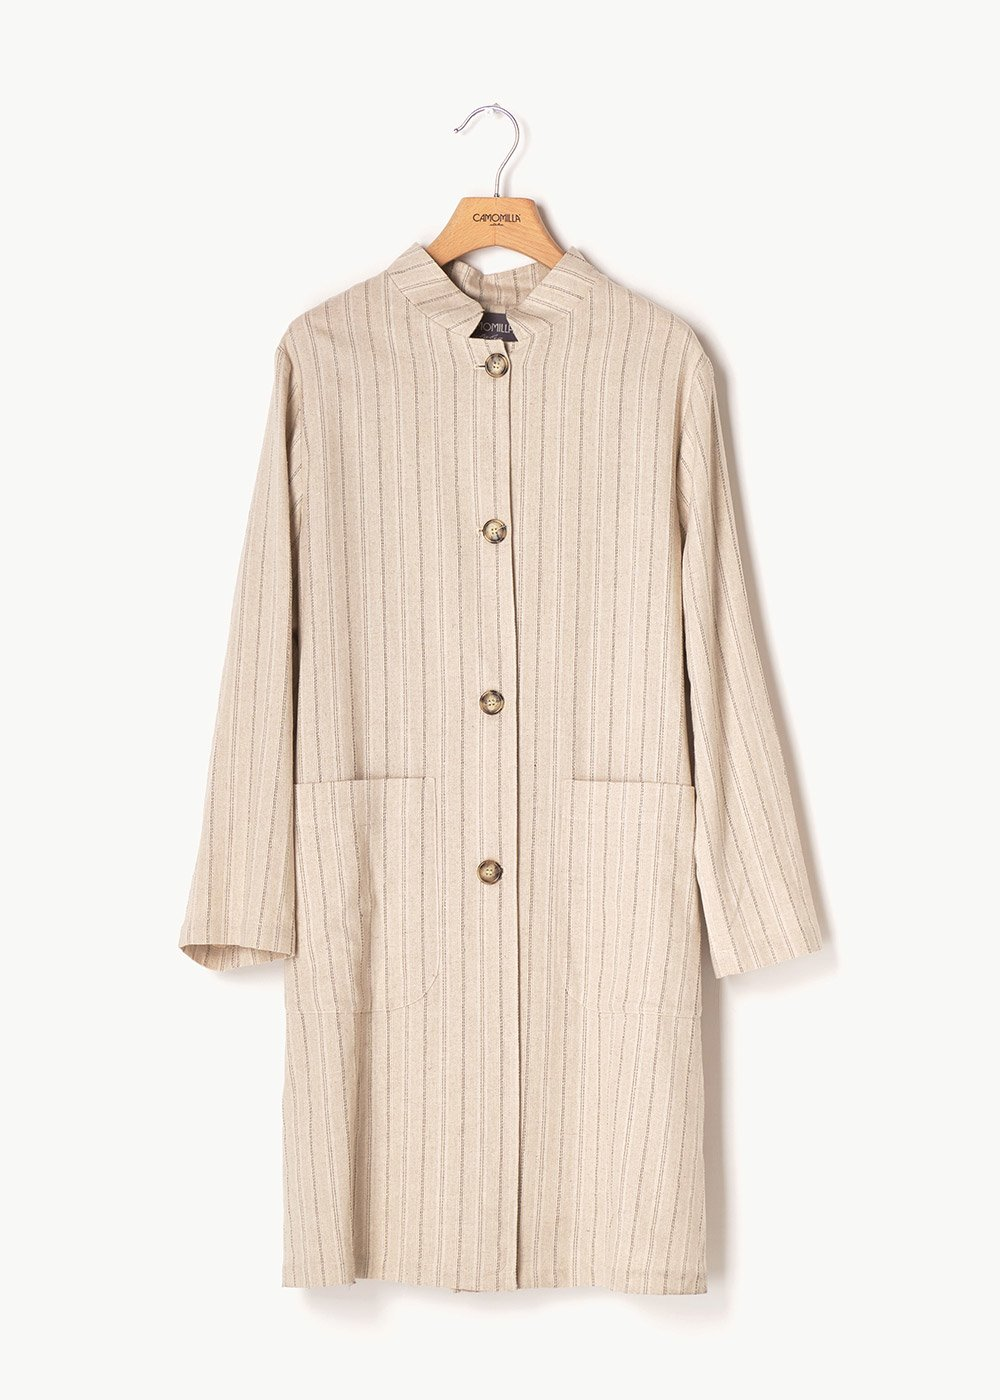 Bess pinstriped raincoat with tortoiseshell buttons - Beige \ Silver Stripes - Woman